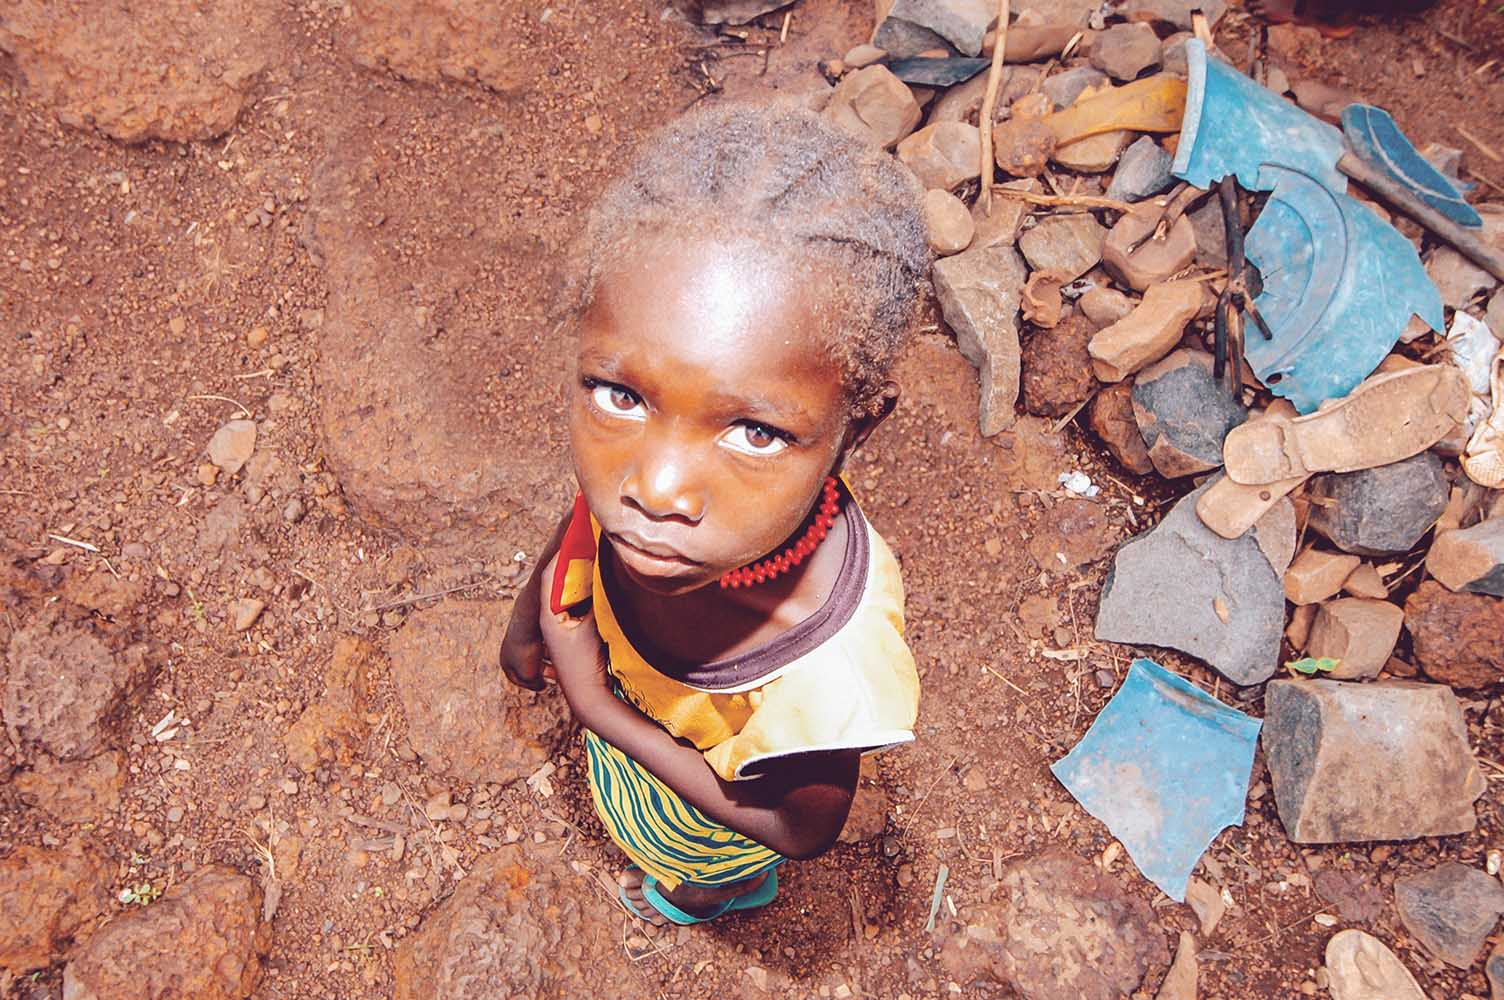 SENEGAL - SEPTEMBER 17: Little girl from the Bedic ethnicity, th